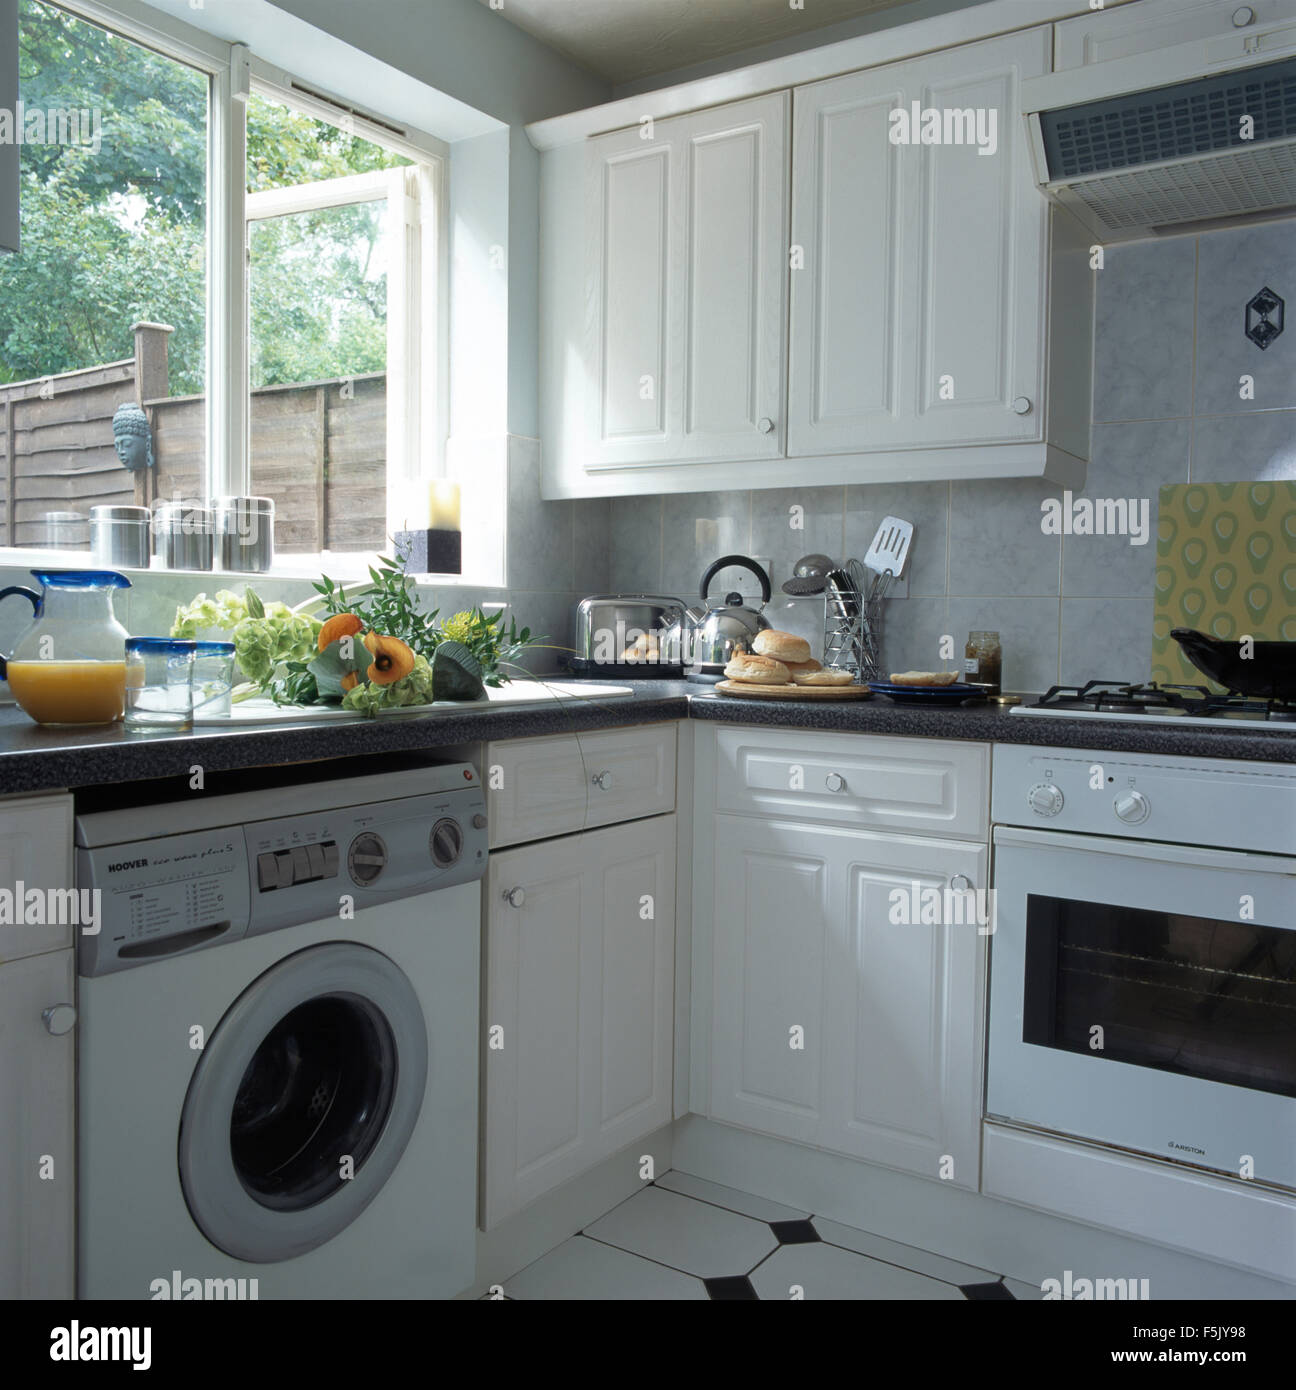 Small Fitted Kitchen Interiors Kitchens Economy Small Stock Photos Interiors Kitchens